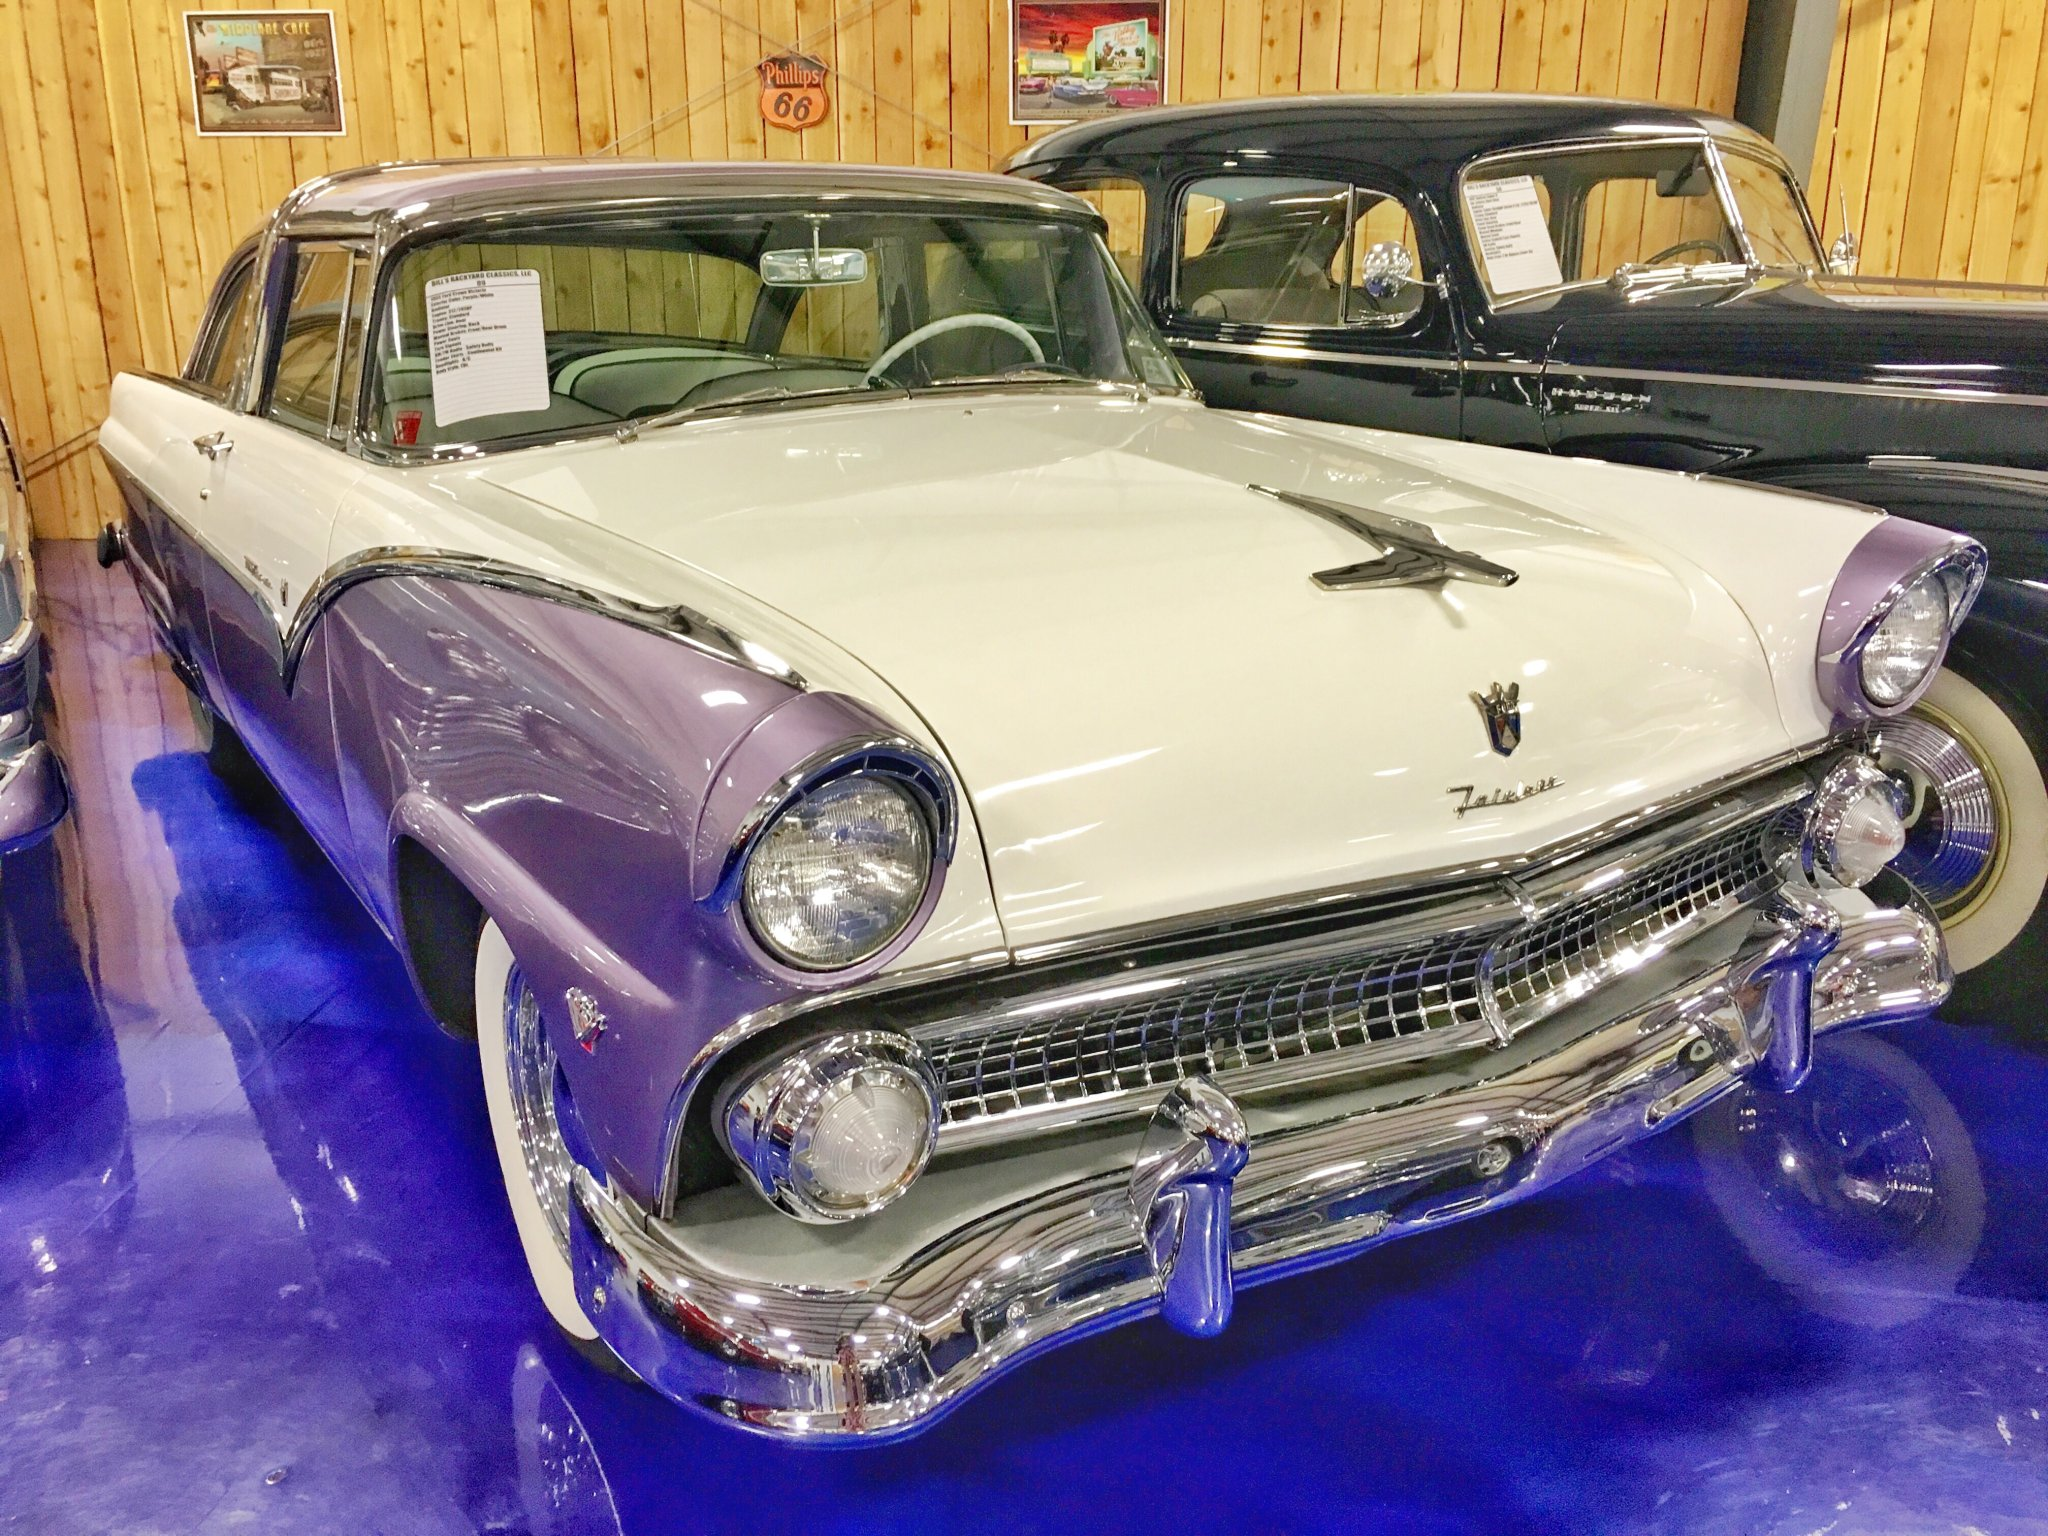 Offbeat Things to Do in Amarillo : The only lavender colored car of this model with the original paint left in the world!